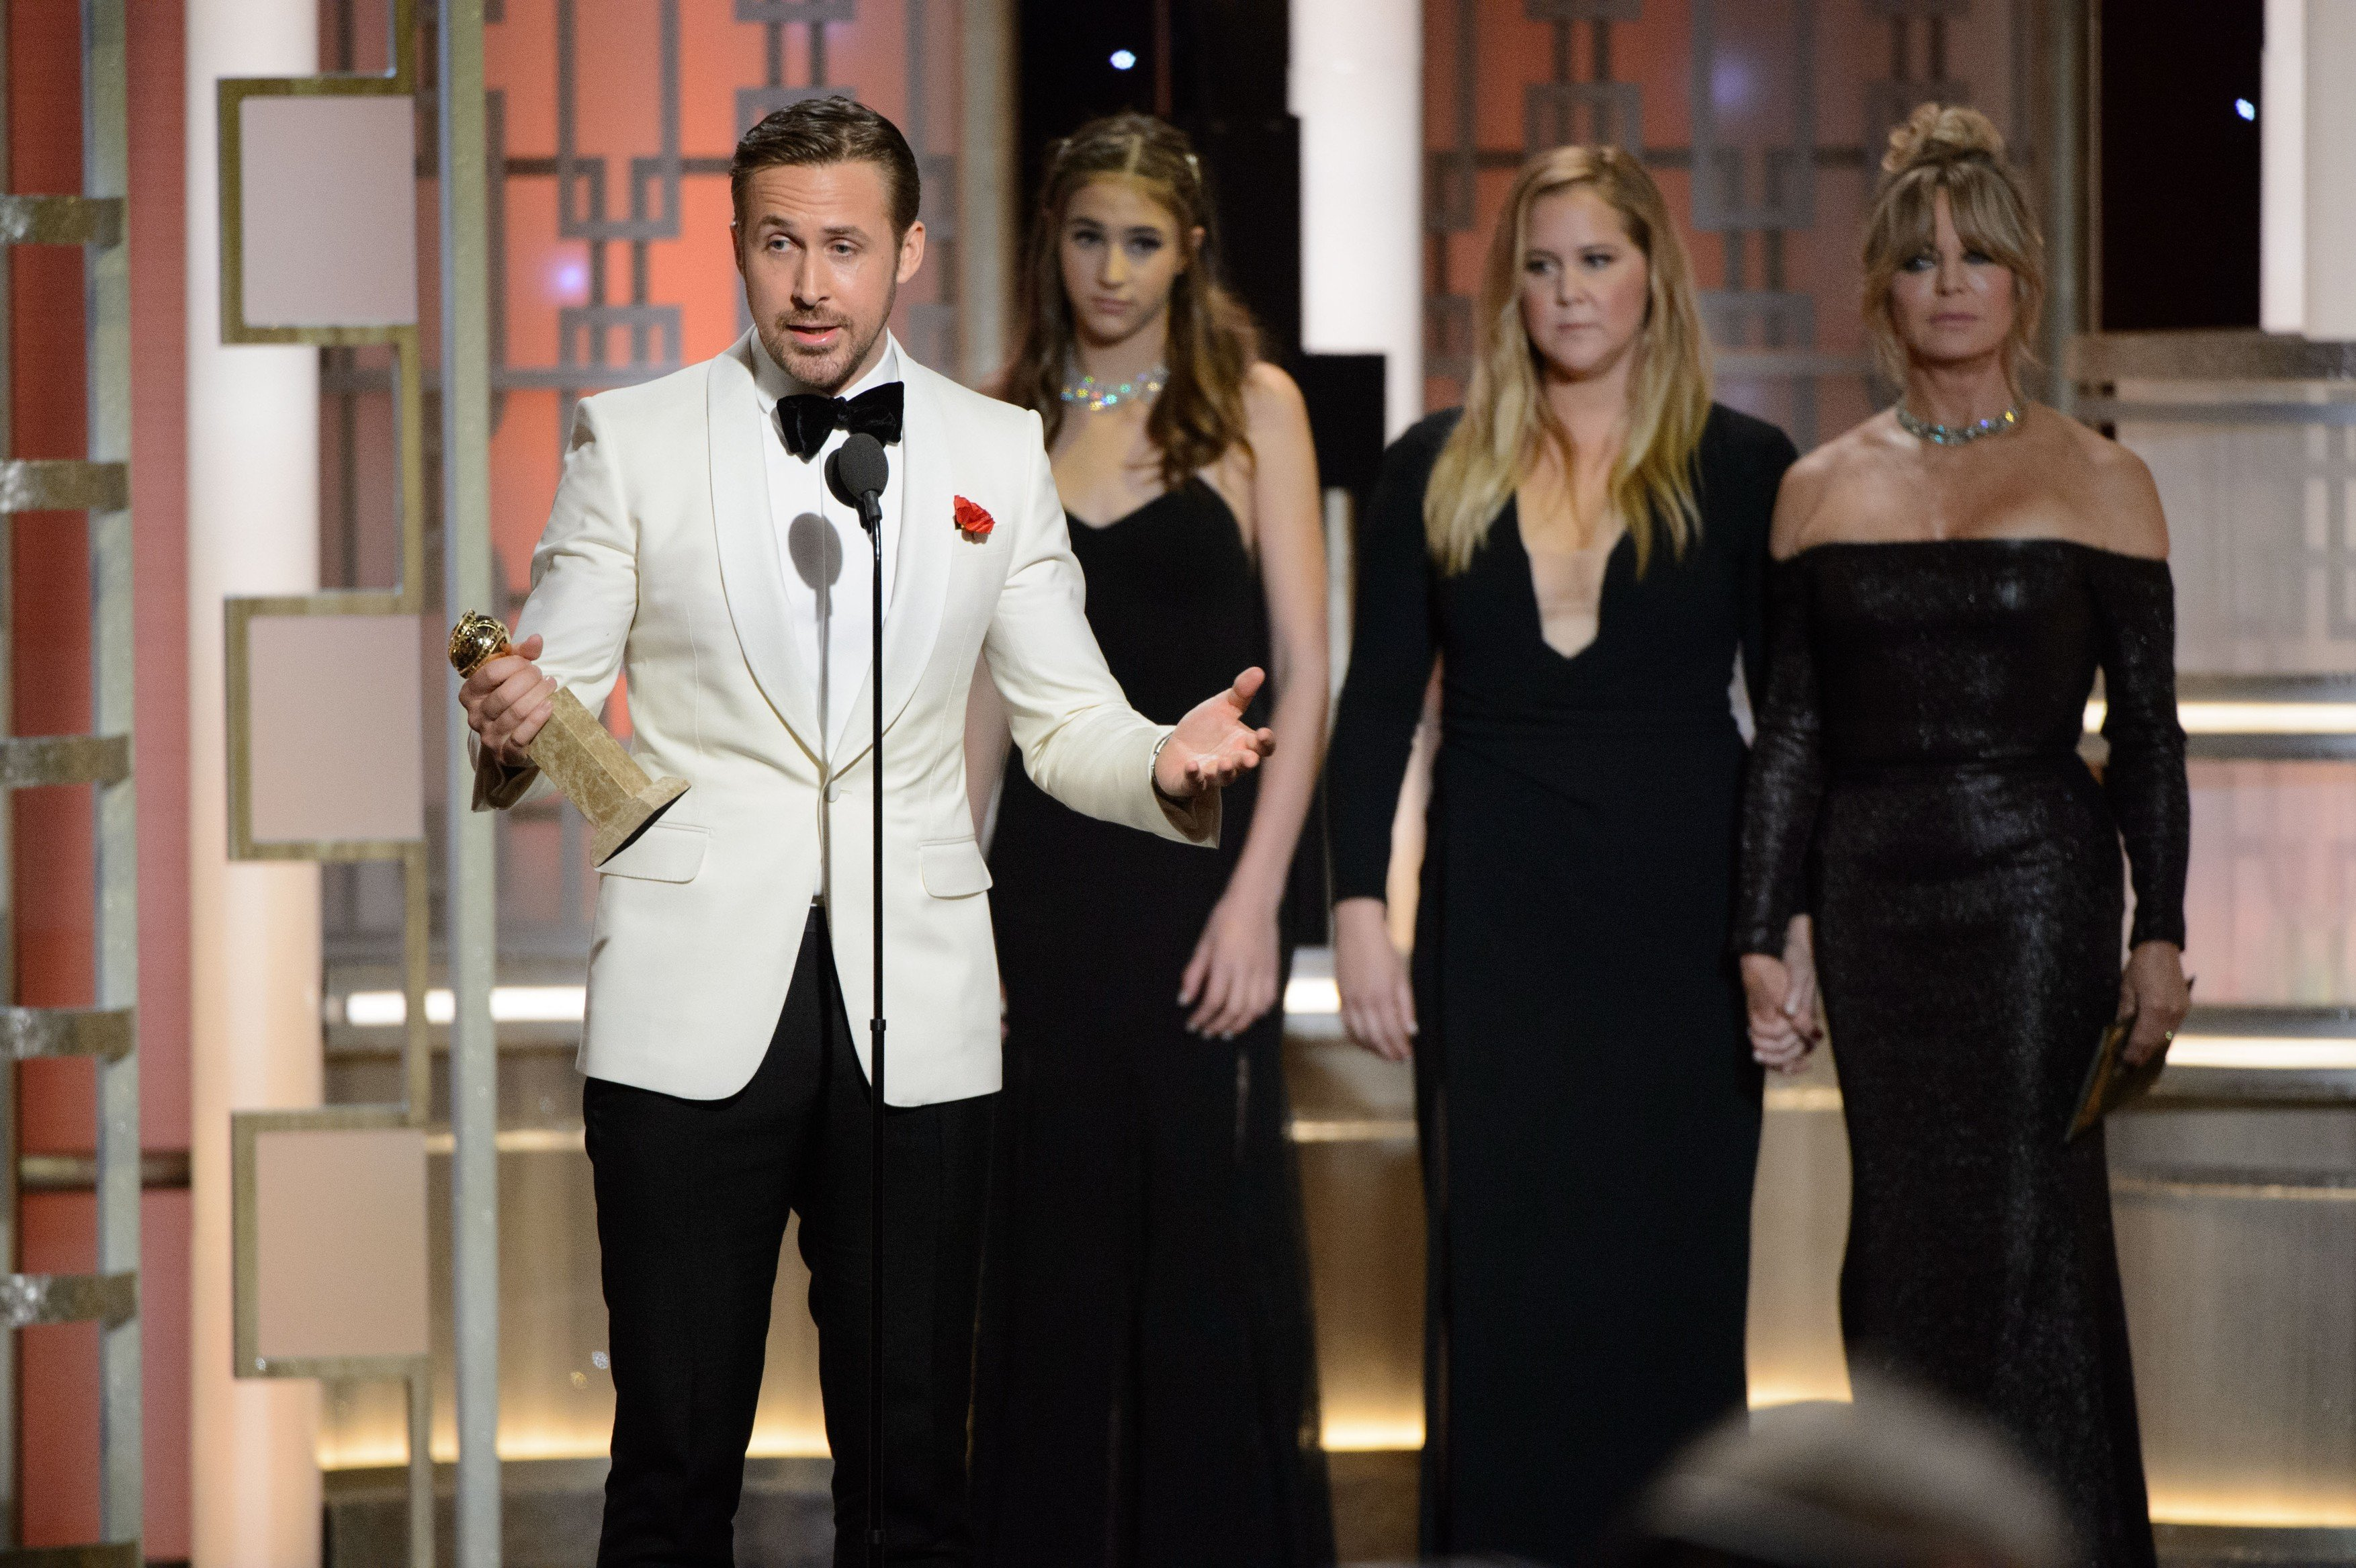 Ryan Gosling accepts the Golden Globe Award for BEST PERFORMANCE BY AN ACTOR IN A MOTION PICTURE 'Äě COMEDY OR MUSICAL for his role in